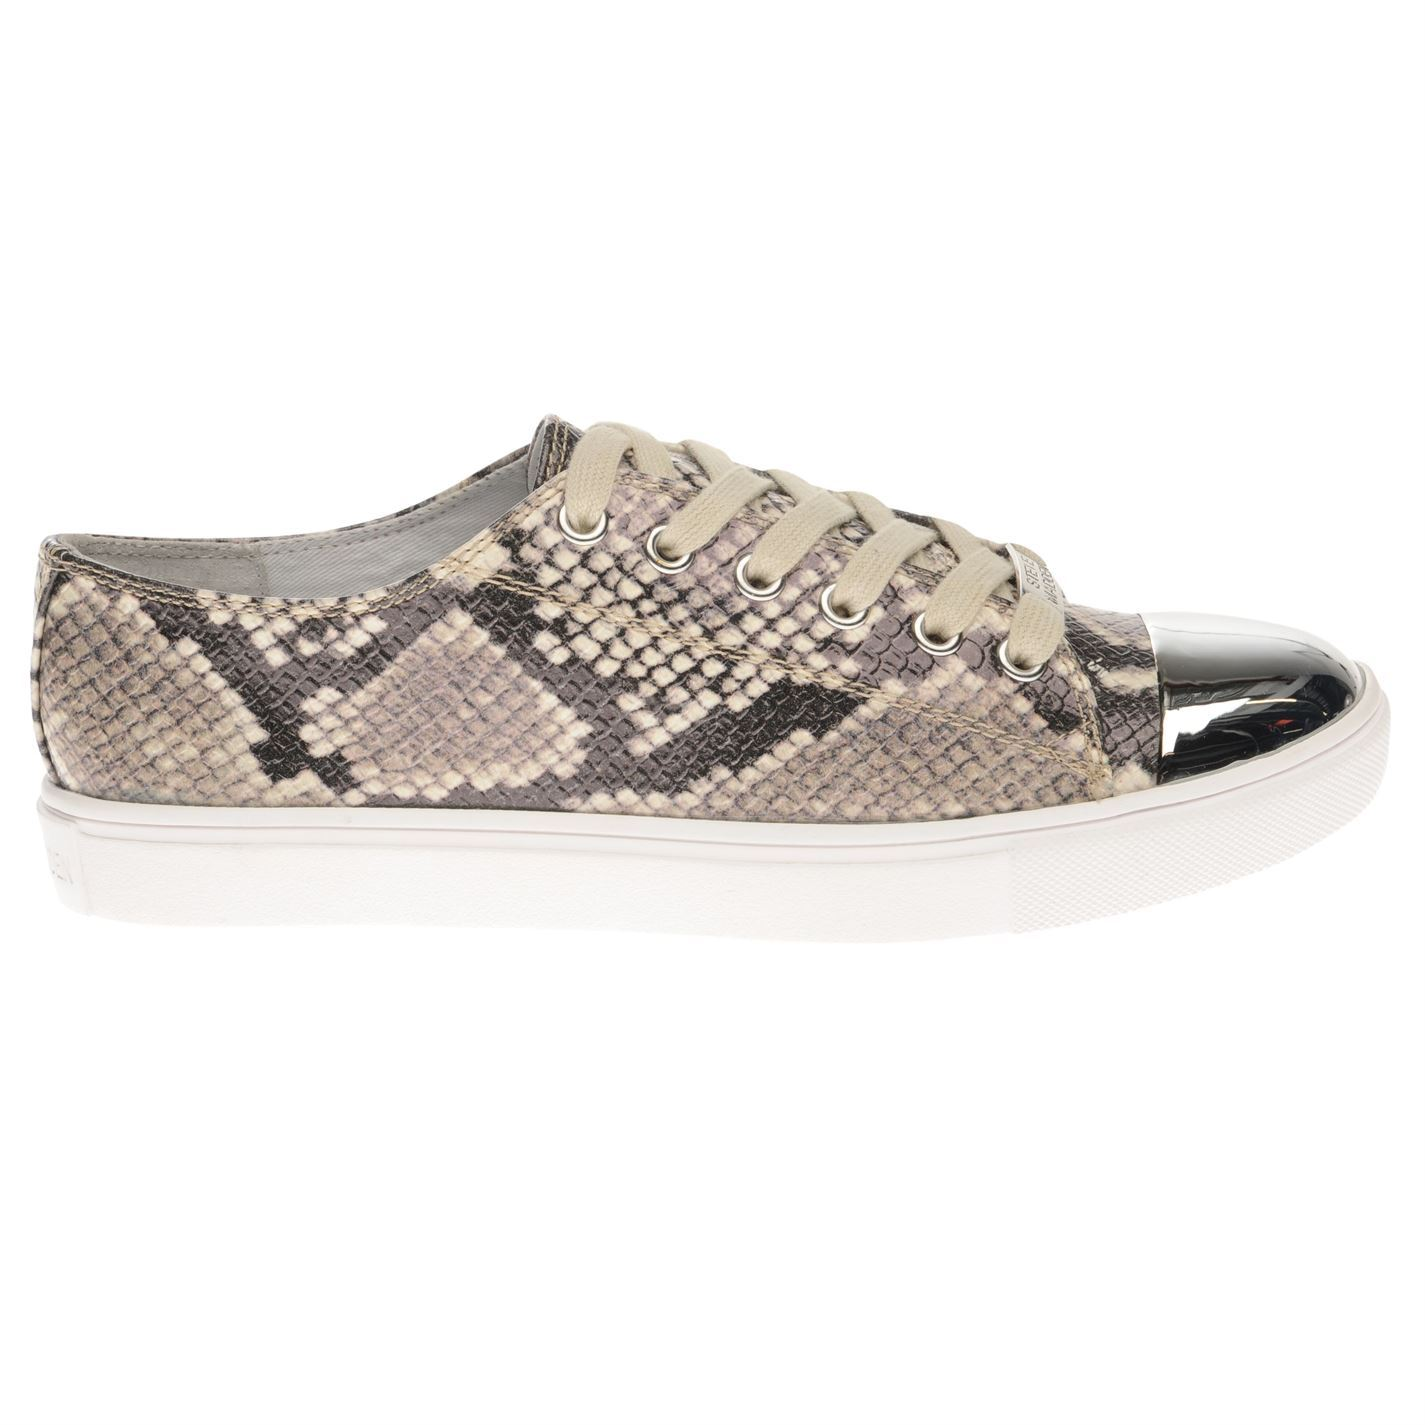 Steve-Madden-Womens-Clydd-Trainers-Sneakers-Lace-Up-